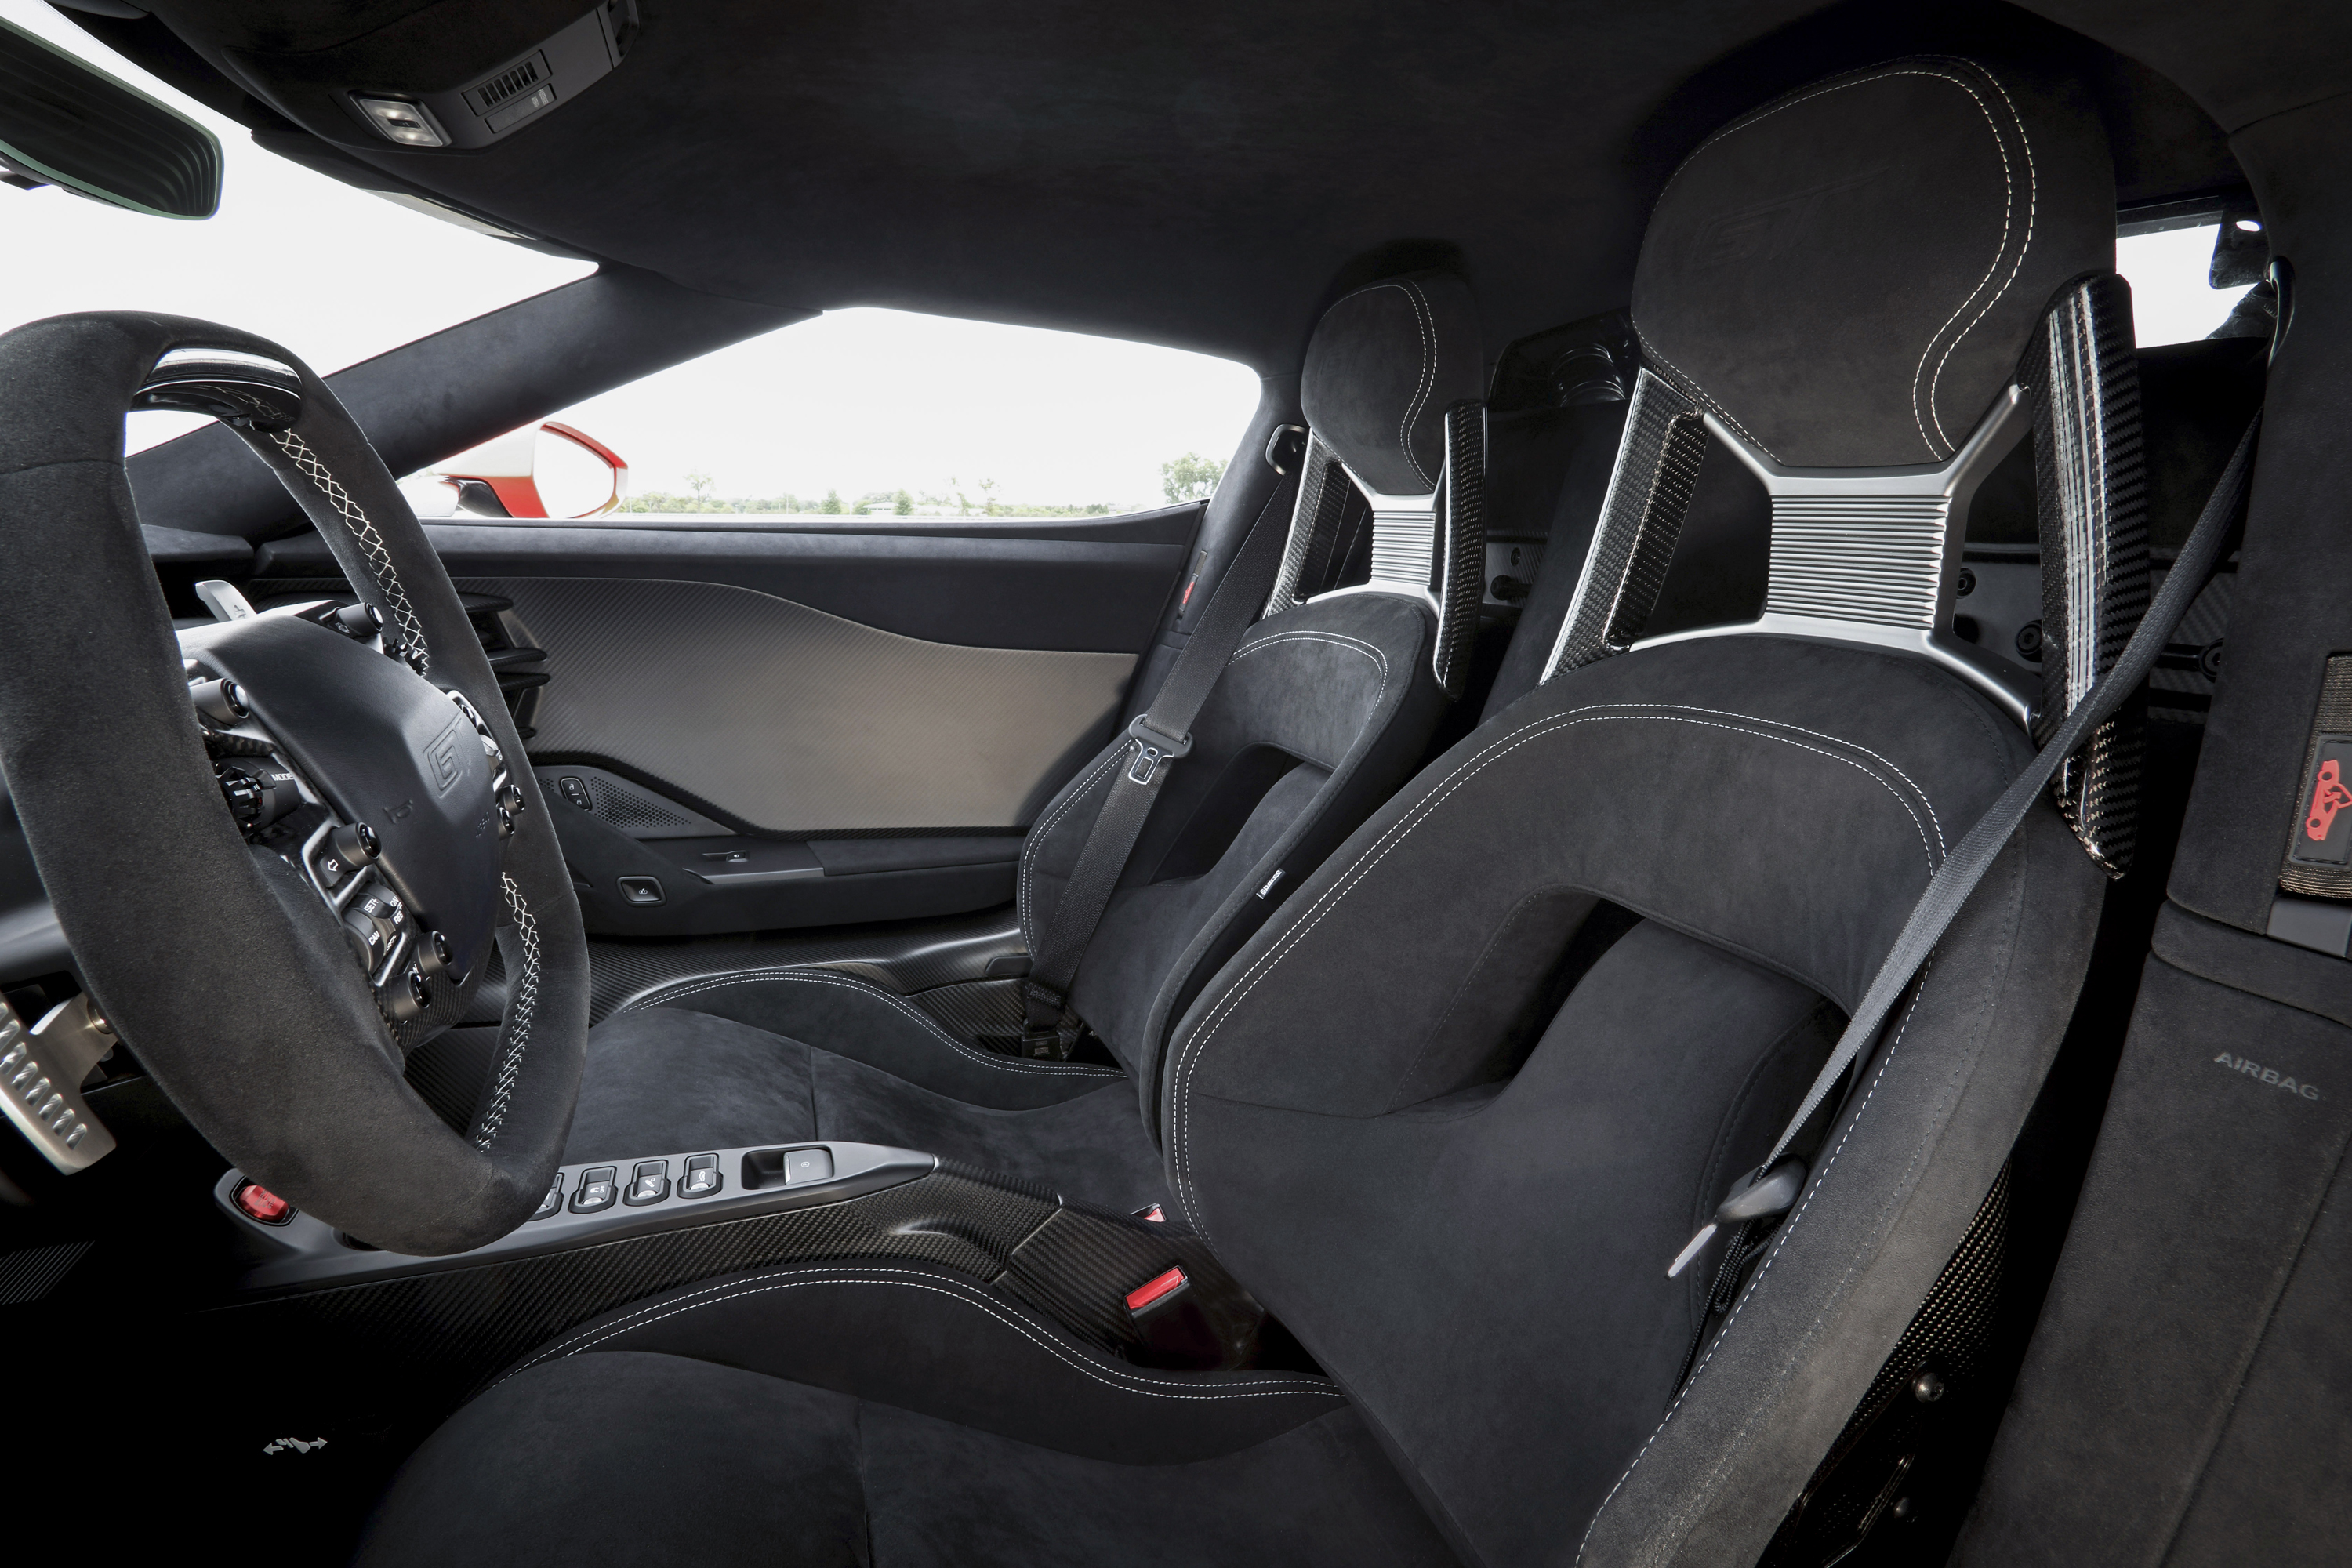 Ford GT Carbon Series Leadfoot Interior